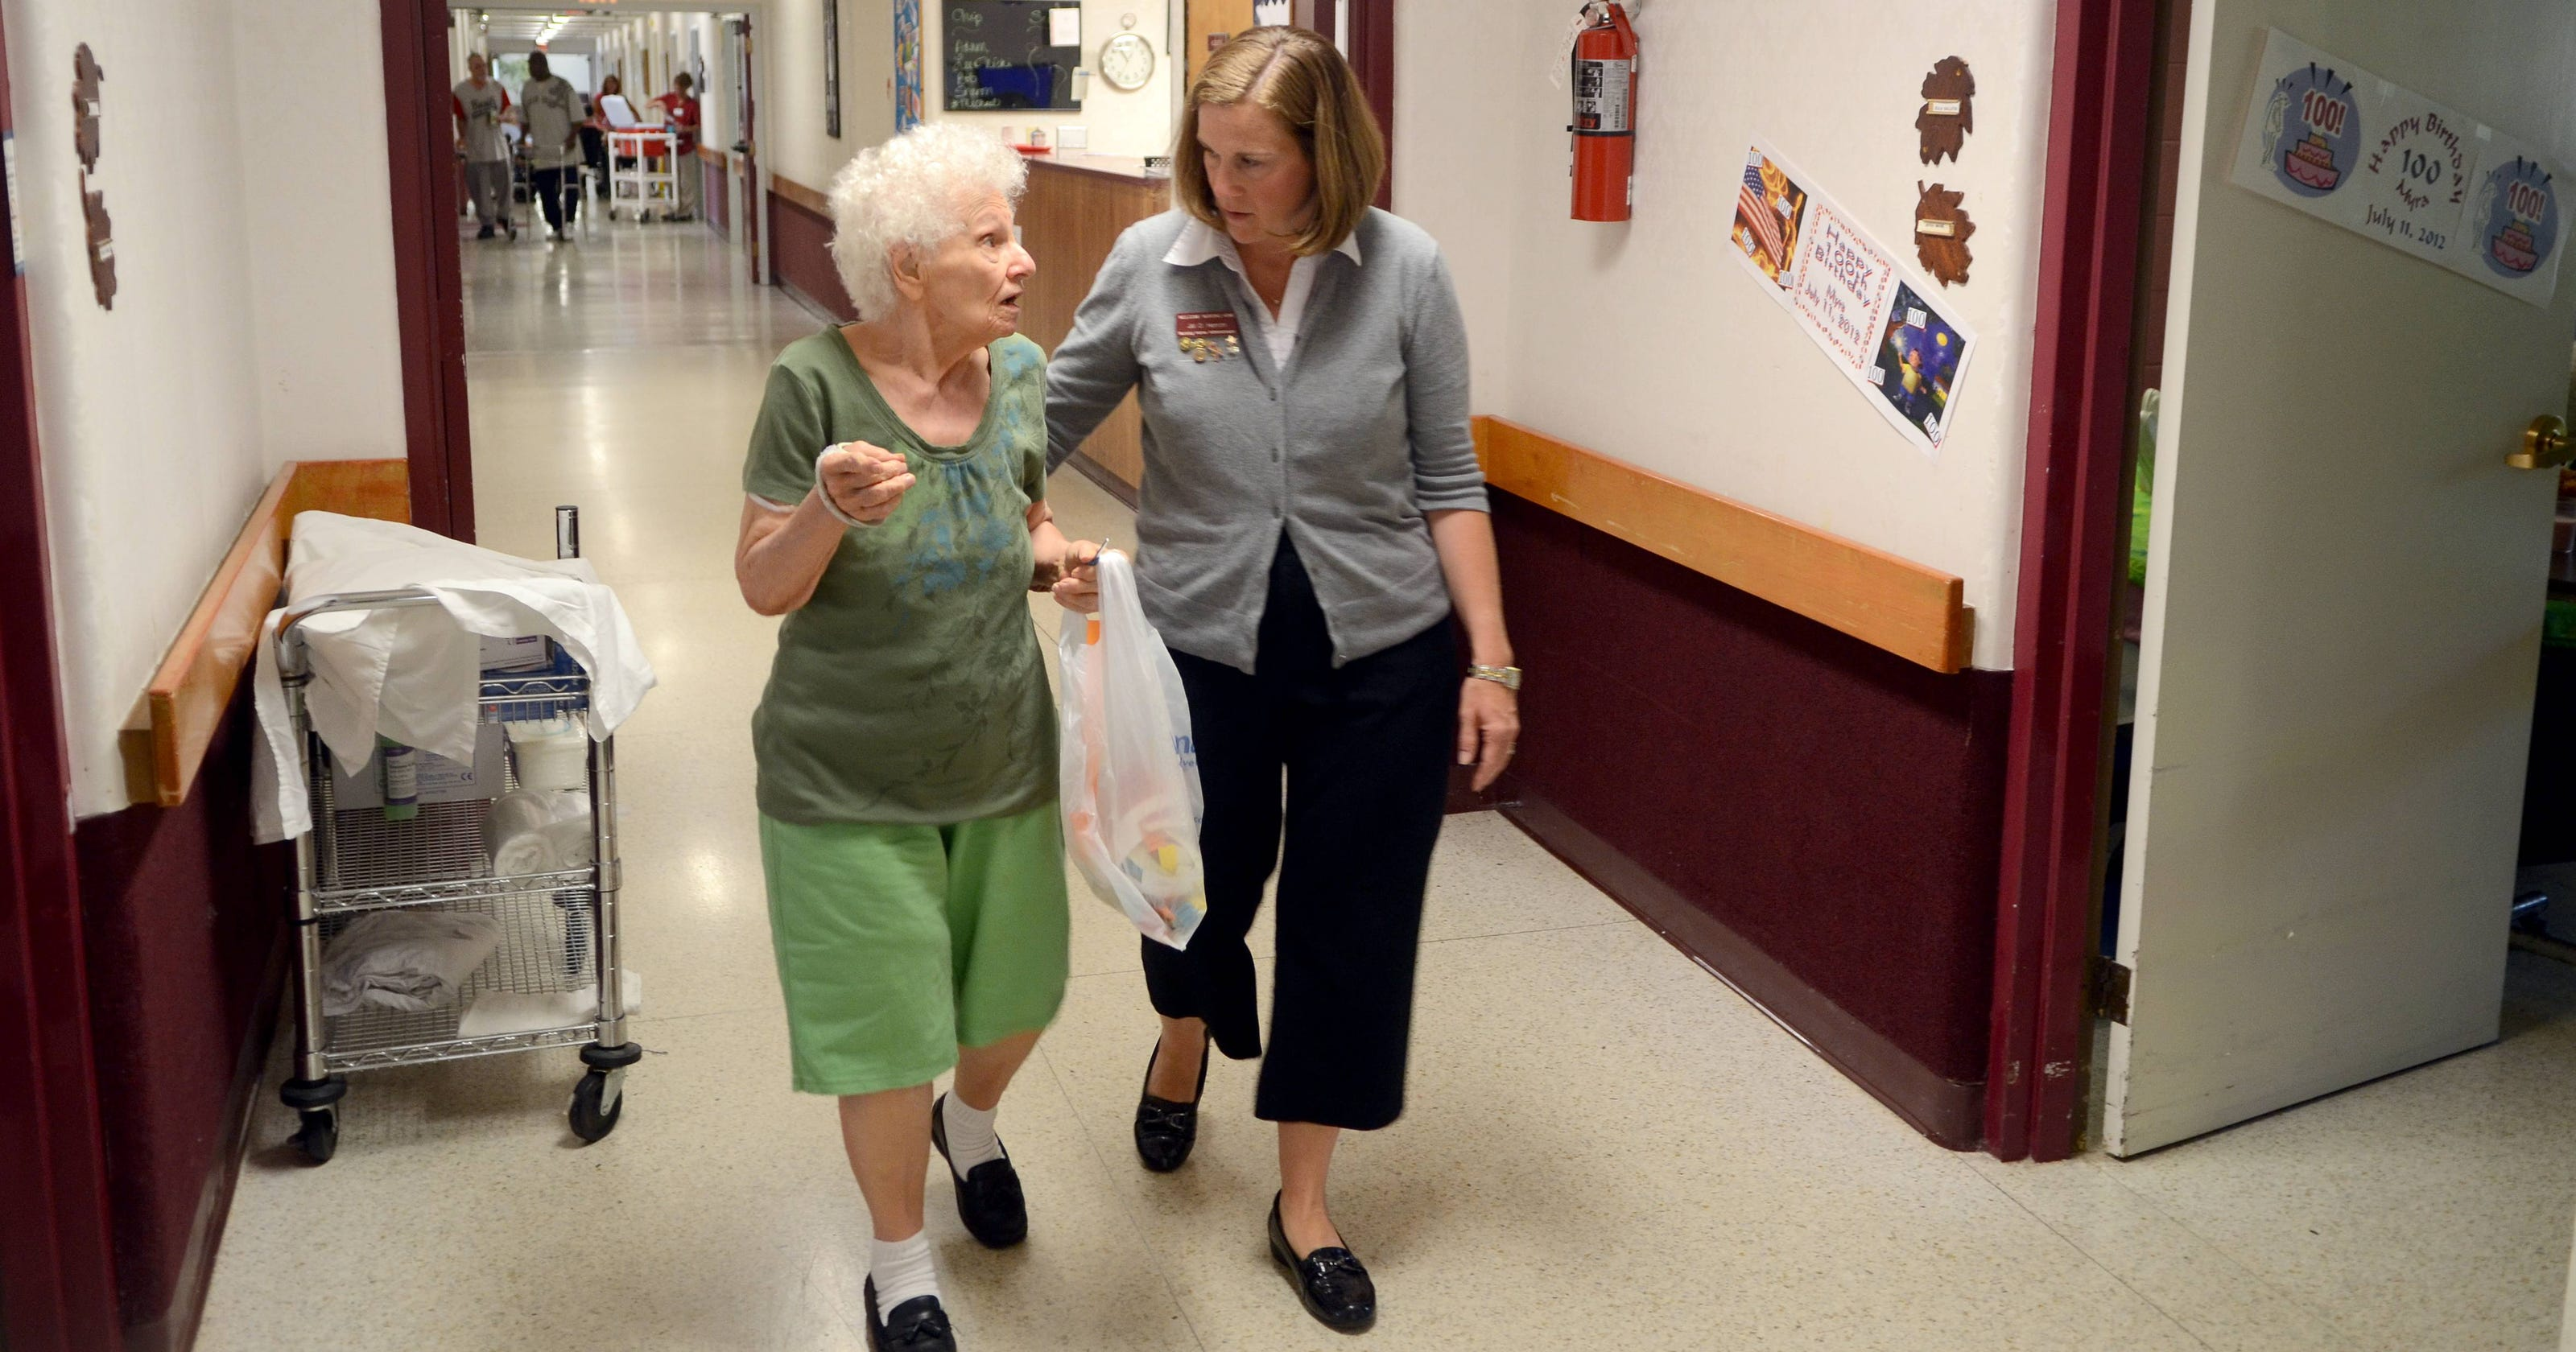 liquidating assets for nursing home We can advise you and your family on the best ways to preserve retirement saving there are always alternatives to spending down assets for nursing home care.